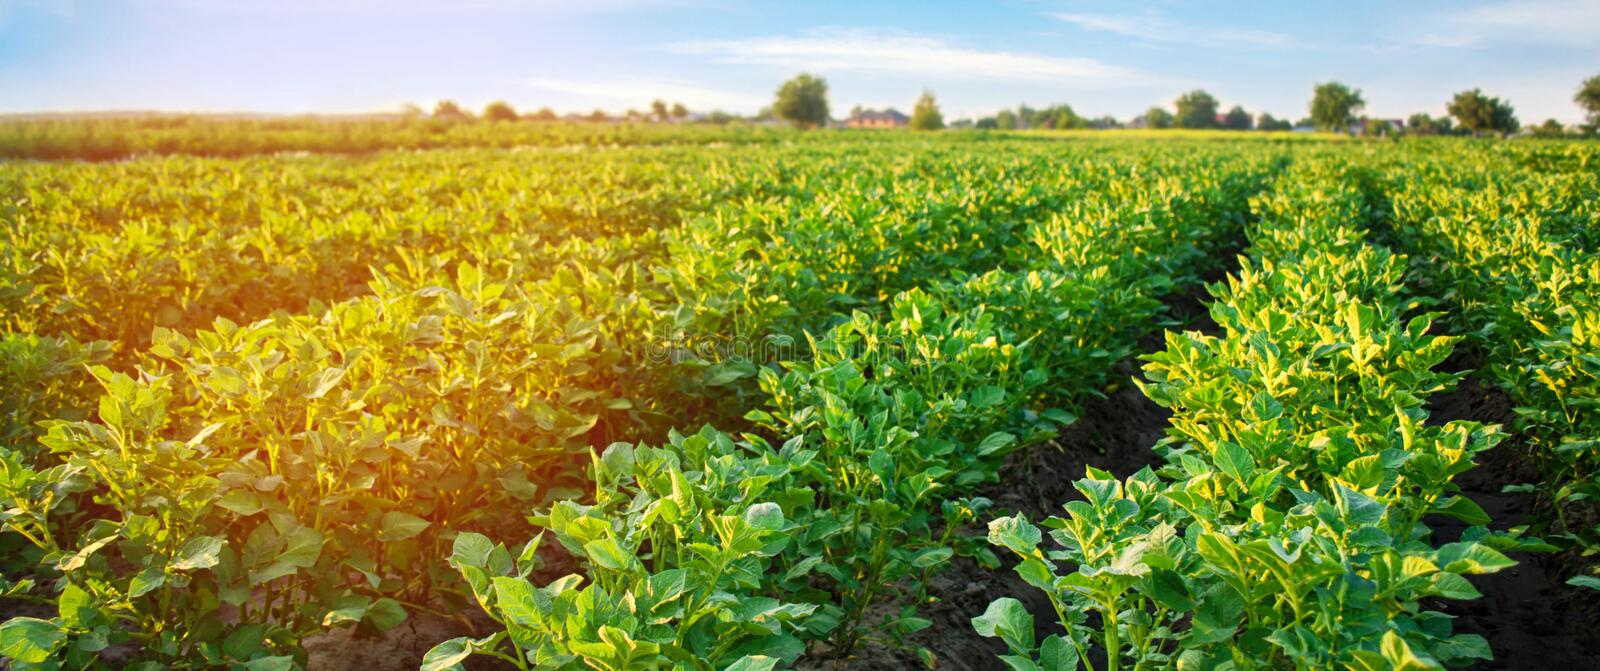 Potato plantations grow in the field. vegetable rows. farming, agriculture. Landscape with agricultural land. crops. Banner royalty free stock photo